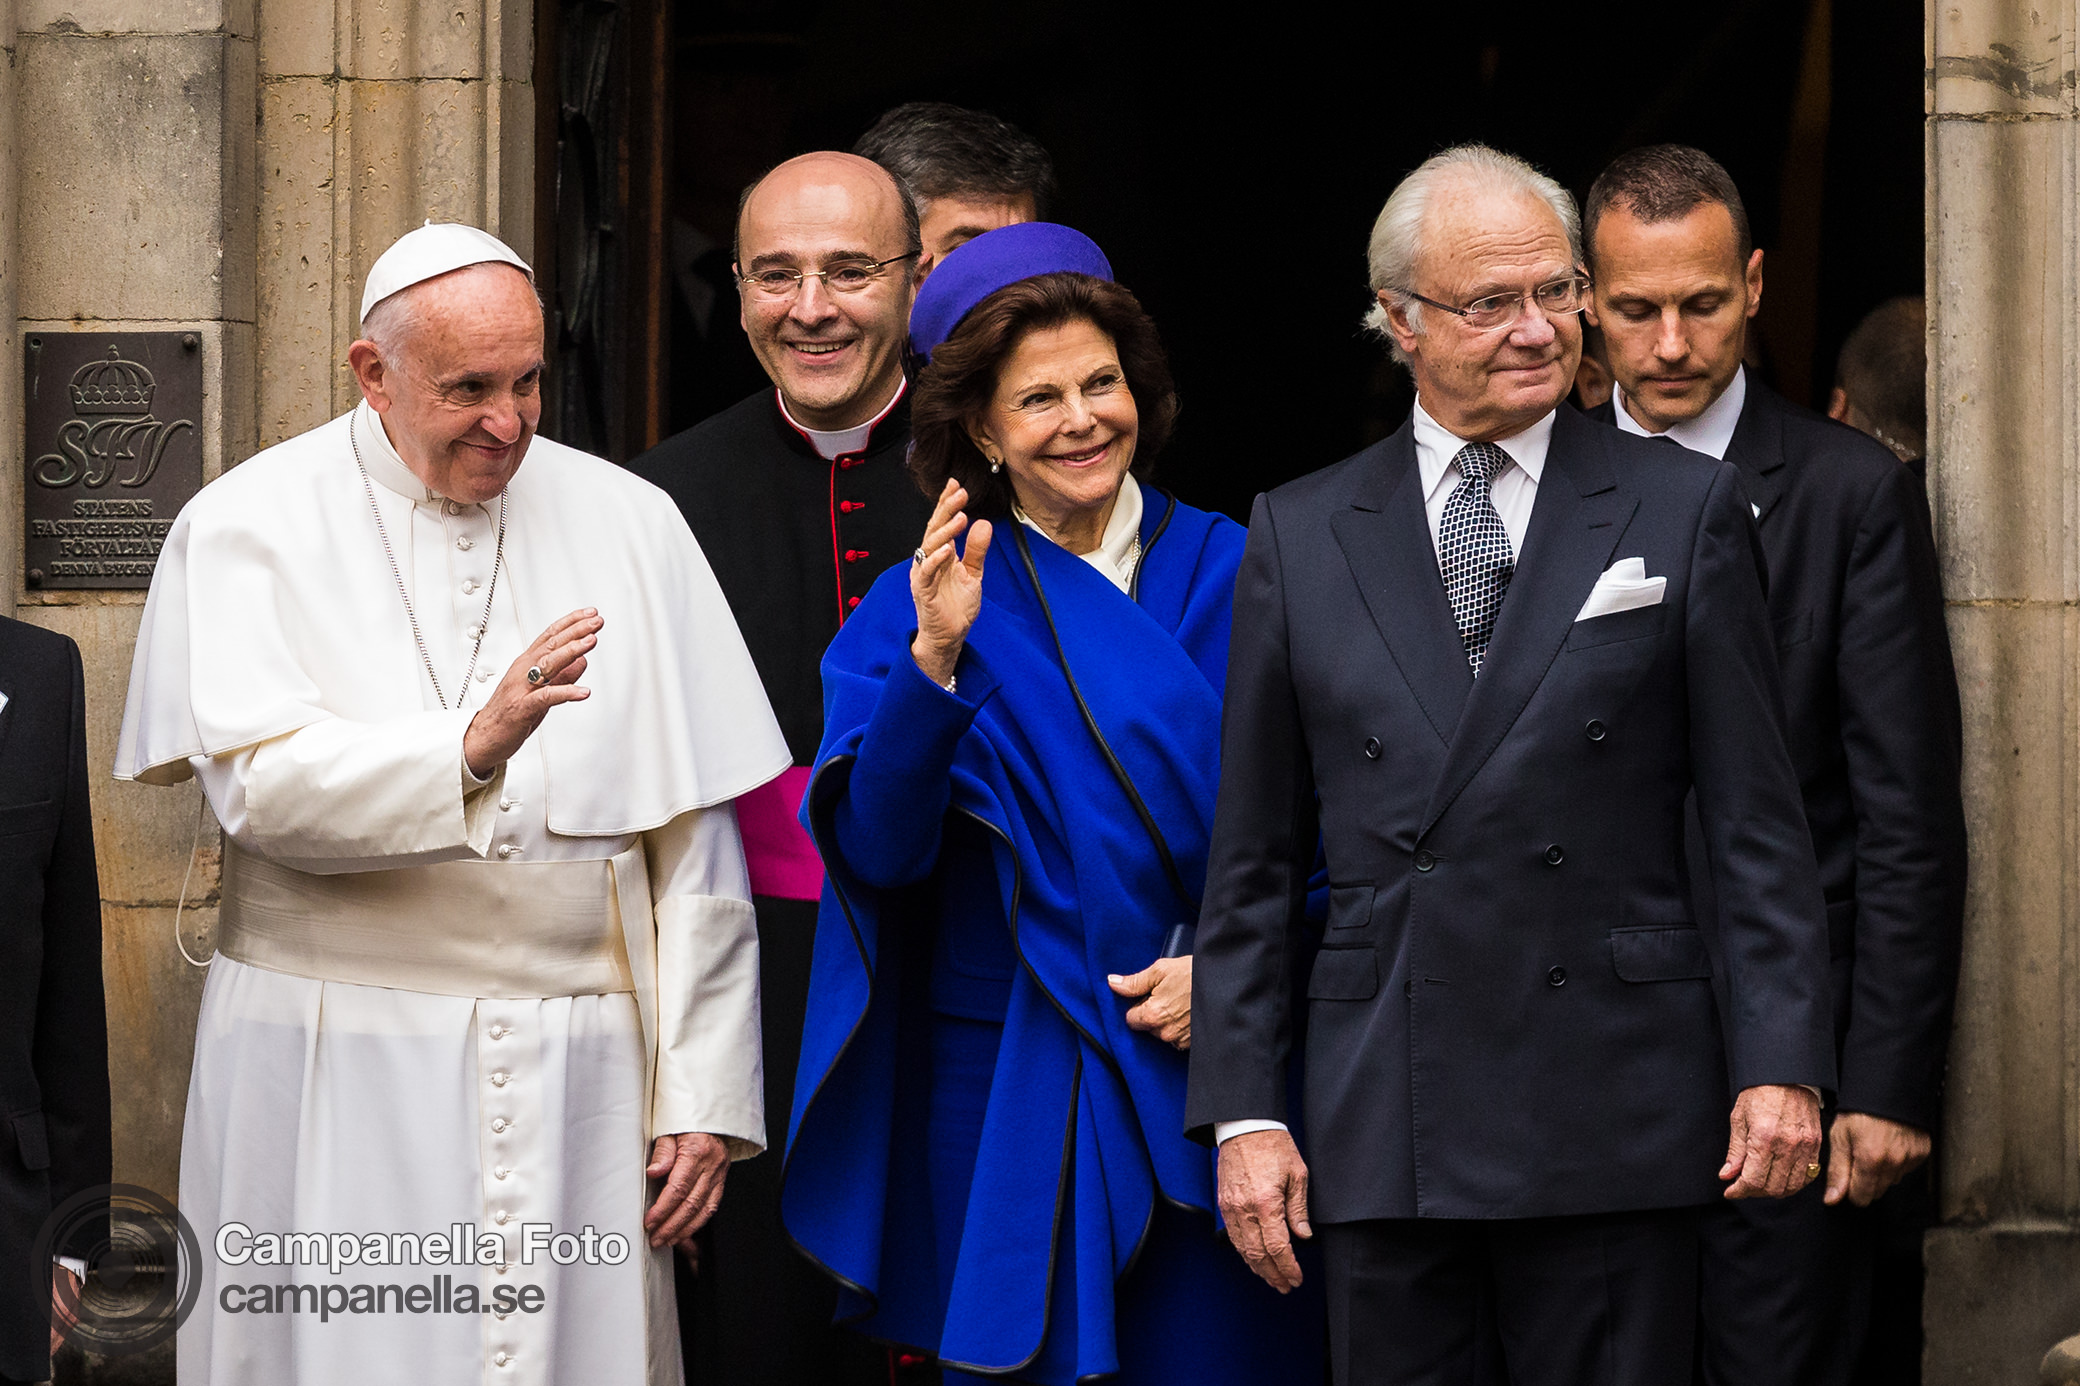 Pope Francis visits Sweden - Michael Campanella Photography